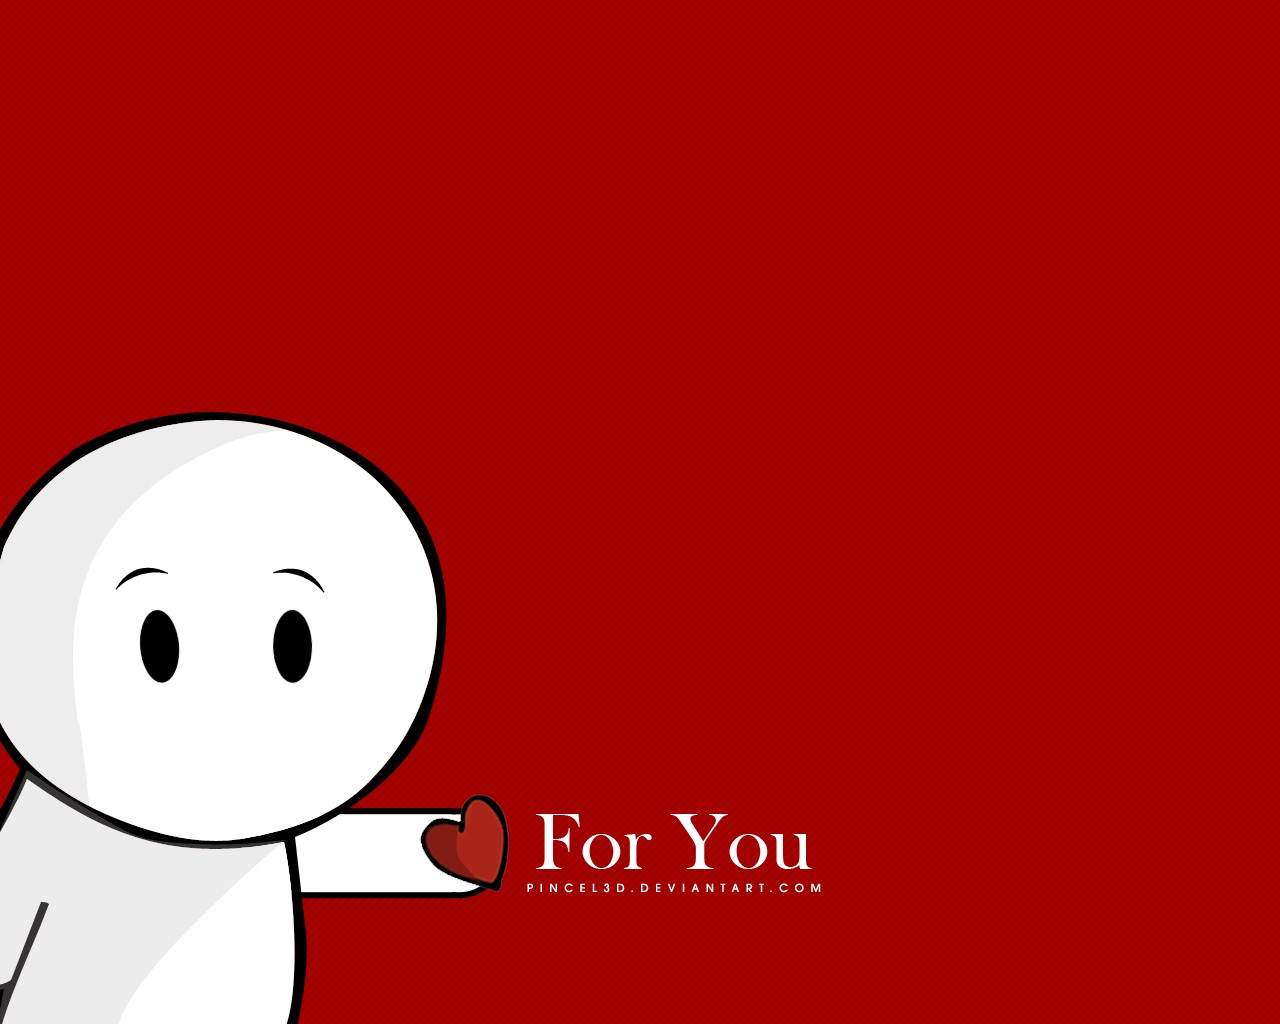 Wallpaper I Love You Hd : I Love You Wallpapers HD A16 - HD Desktop Wallpapers 4k HD